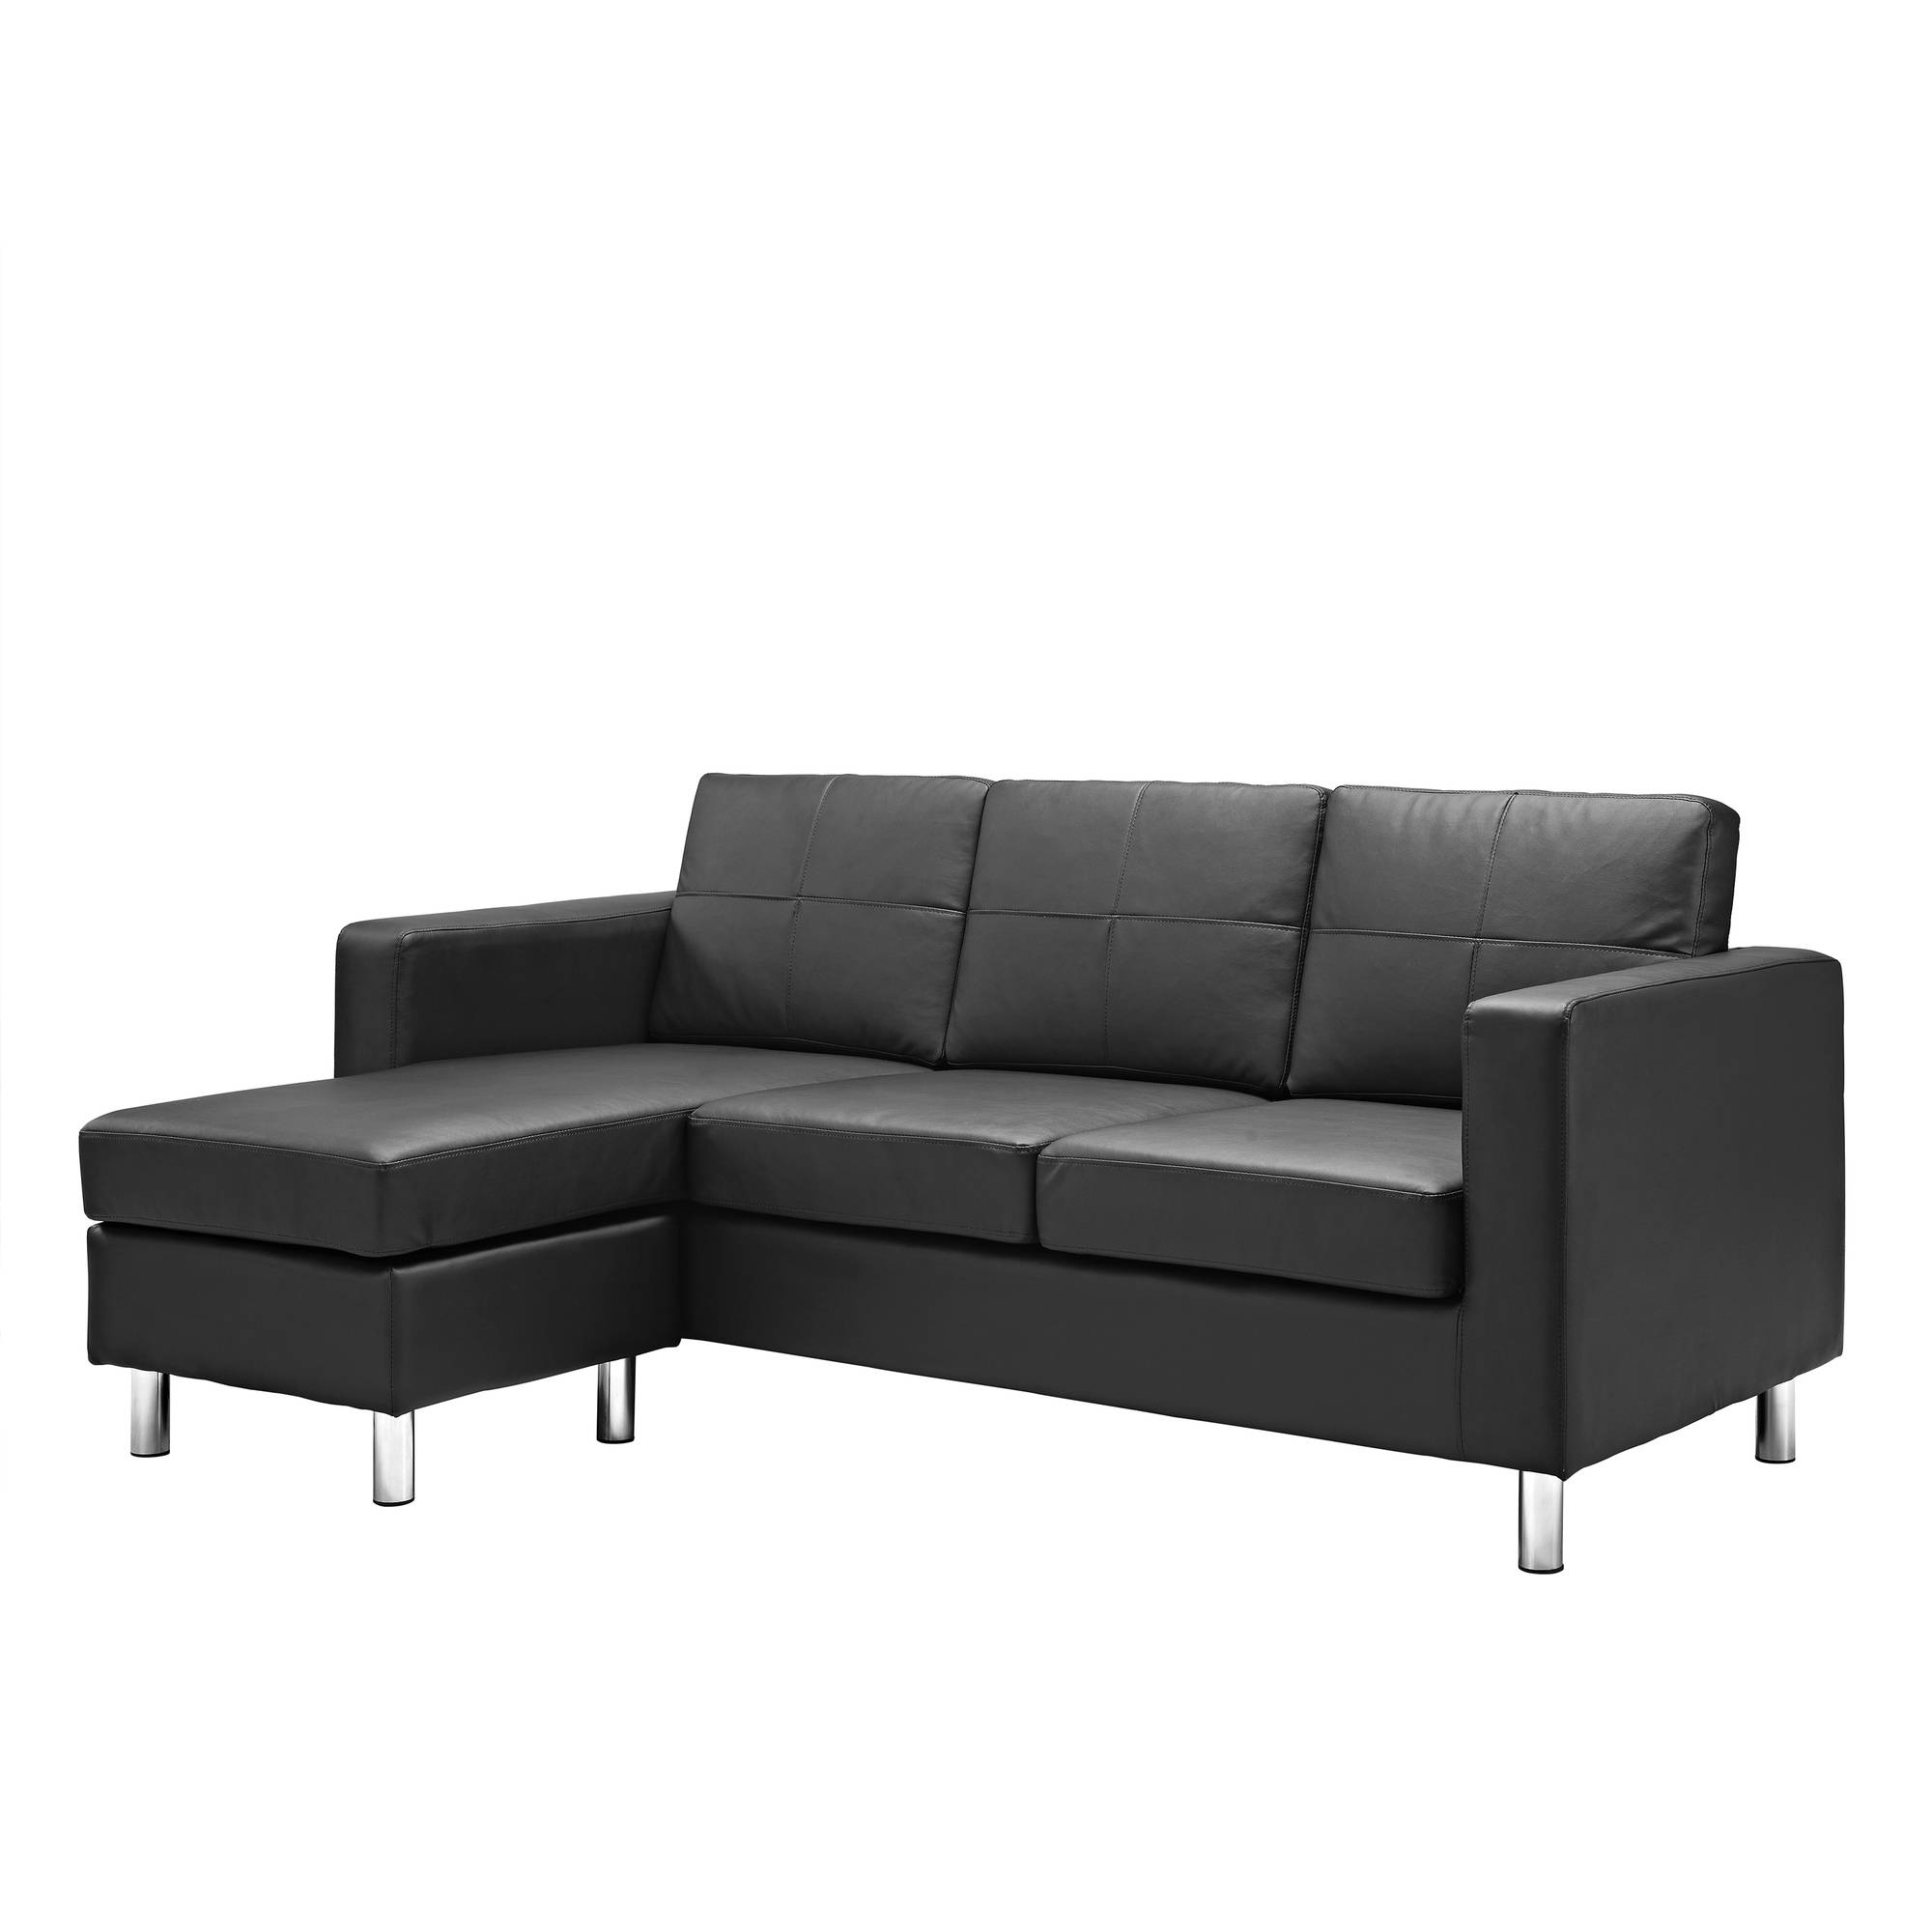 Dorel Living Small Spaces Configurable Sectional Sofa Multiple Pertaining To Durable Sectional Sofa (View 13 of 15)